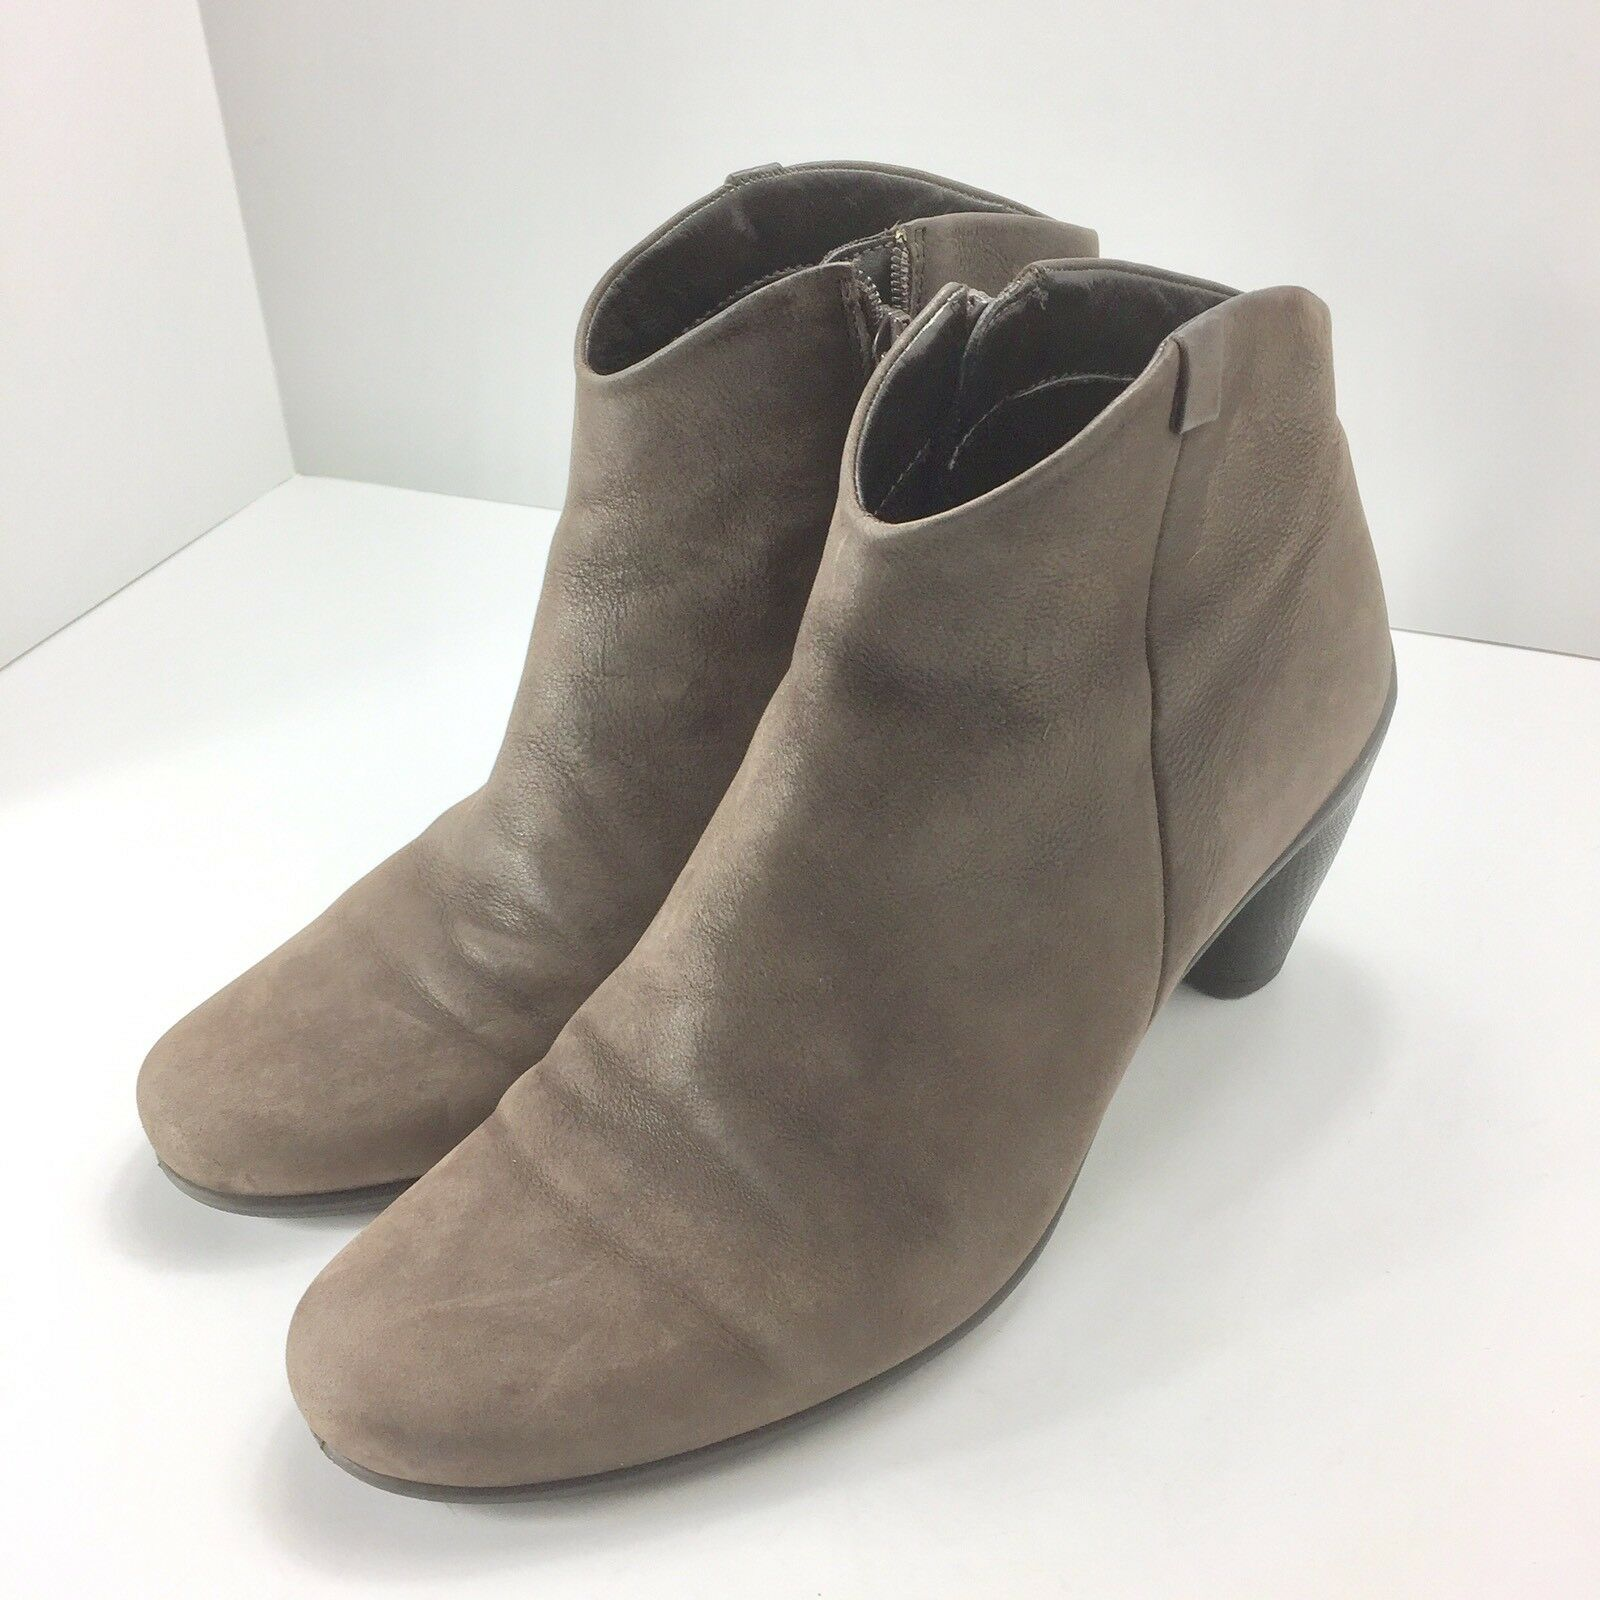 Ecco Womens Suede Ankle Boots Booties Size Euro 41 US 9.5 Brown